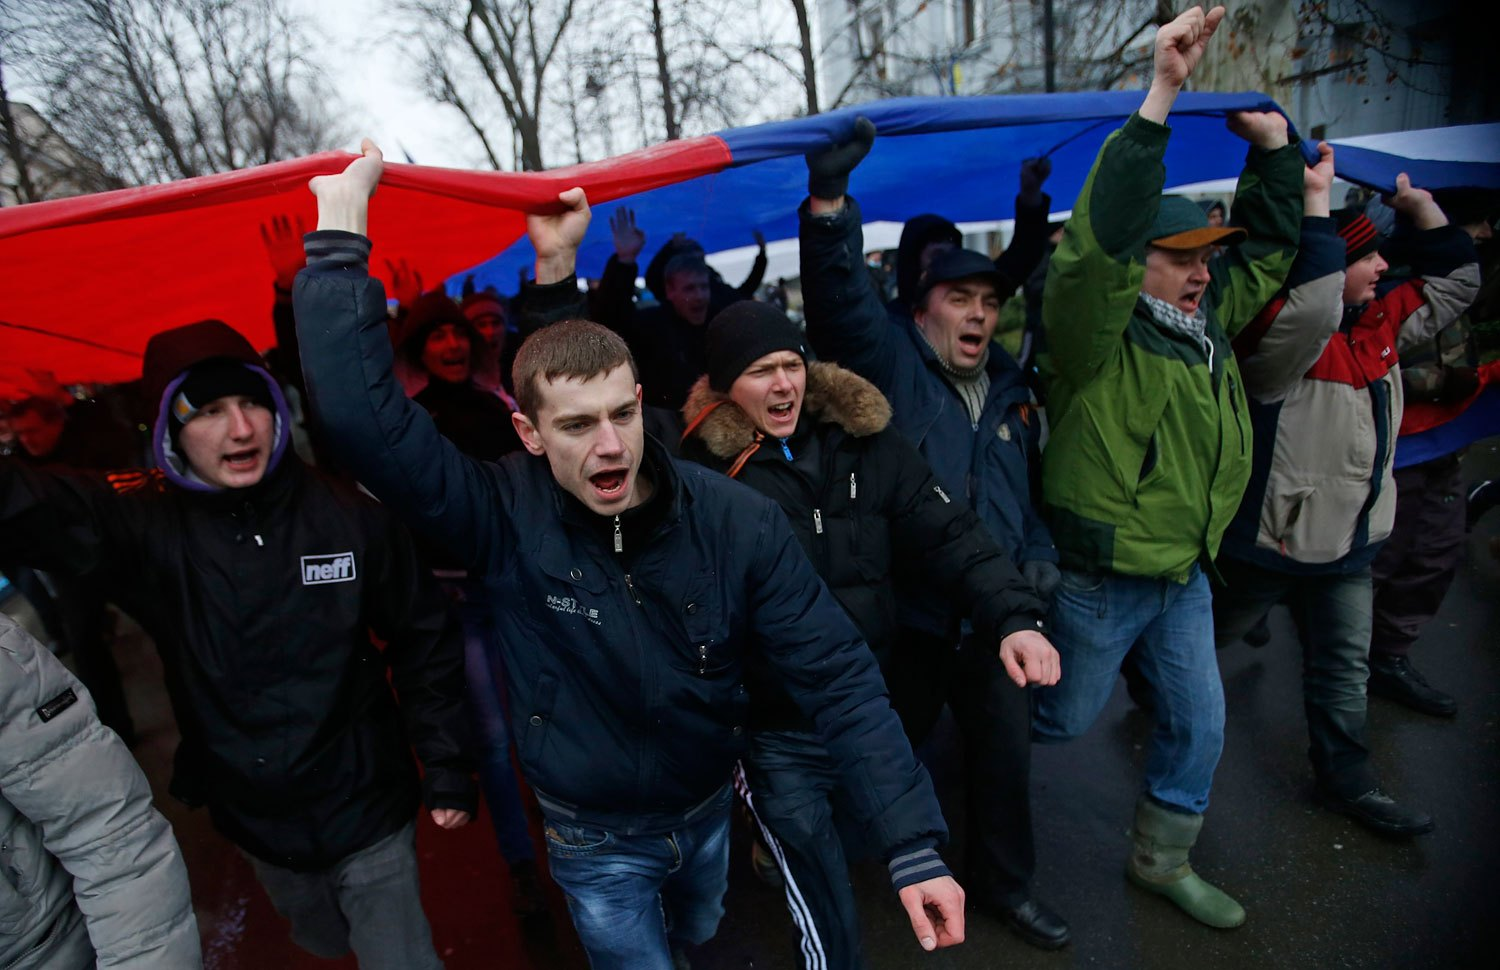 People carry a giant Russian flag during a pro-Russian rally in Simferopol, Feb. 27, 2014.